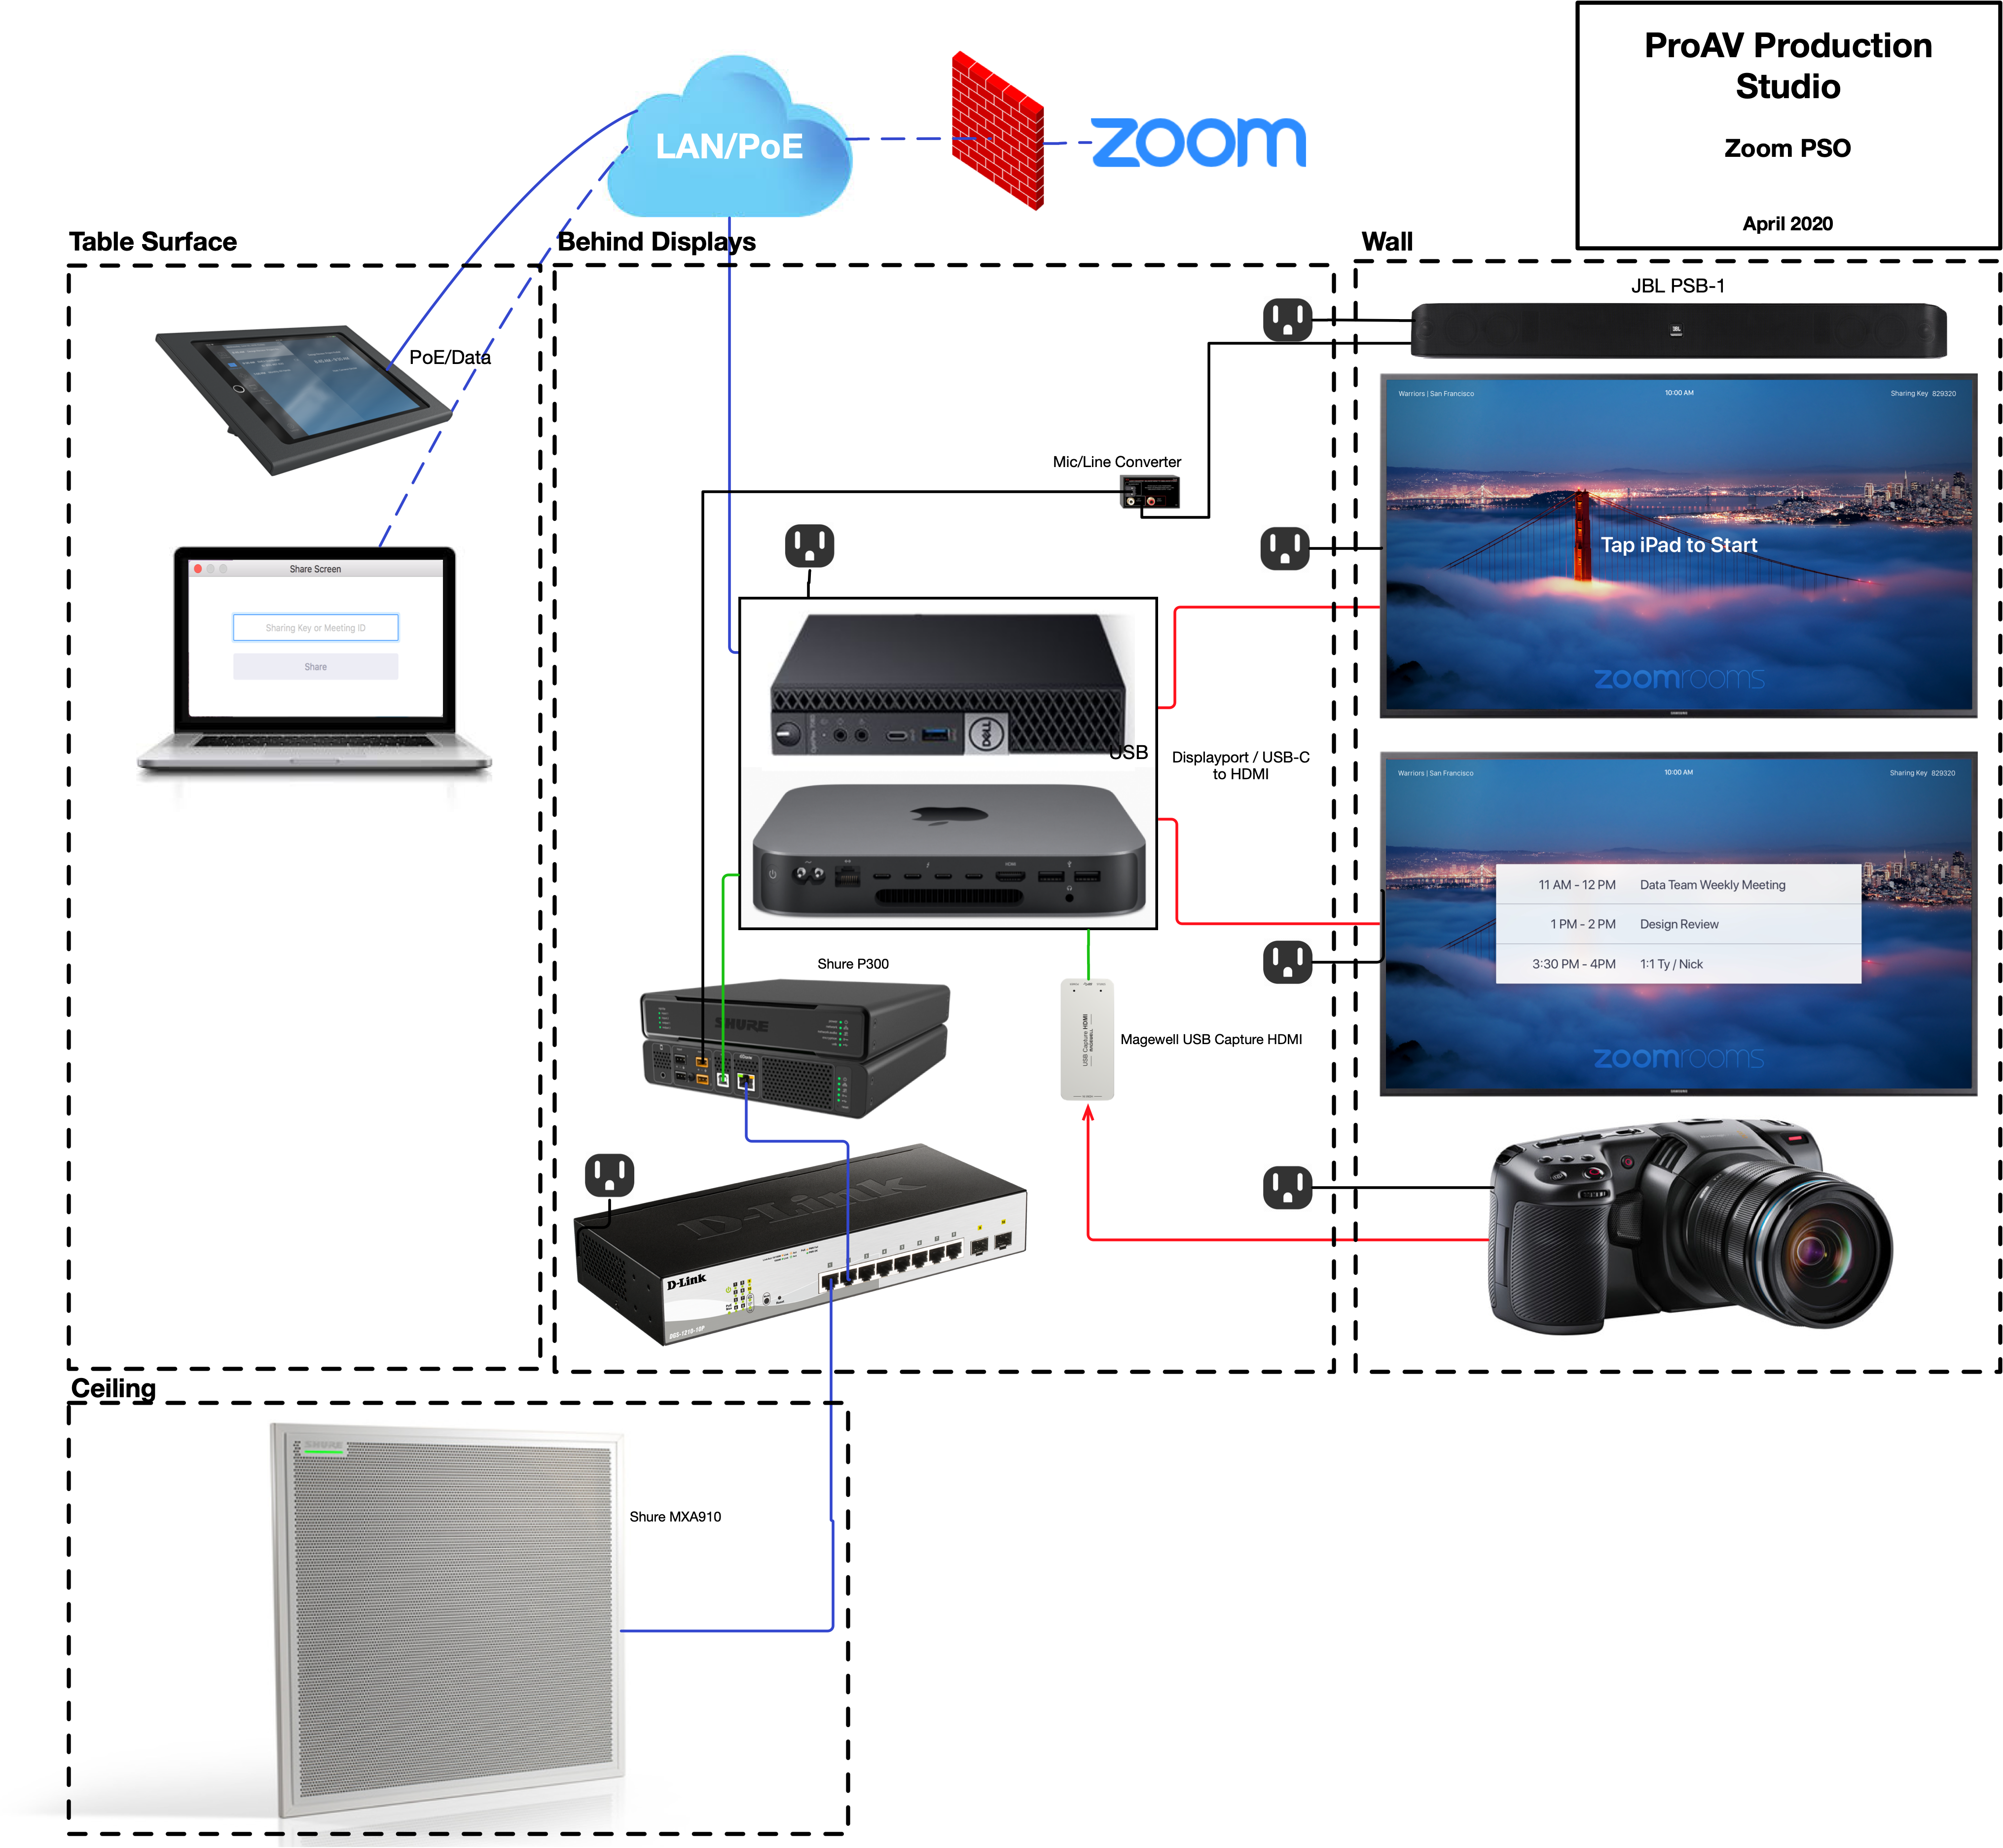 Pictorial_Schematic_-_Zoom_Rooms_ProAV_Production_Studio__2-5_People_.png